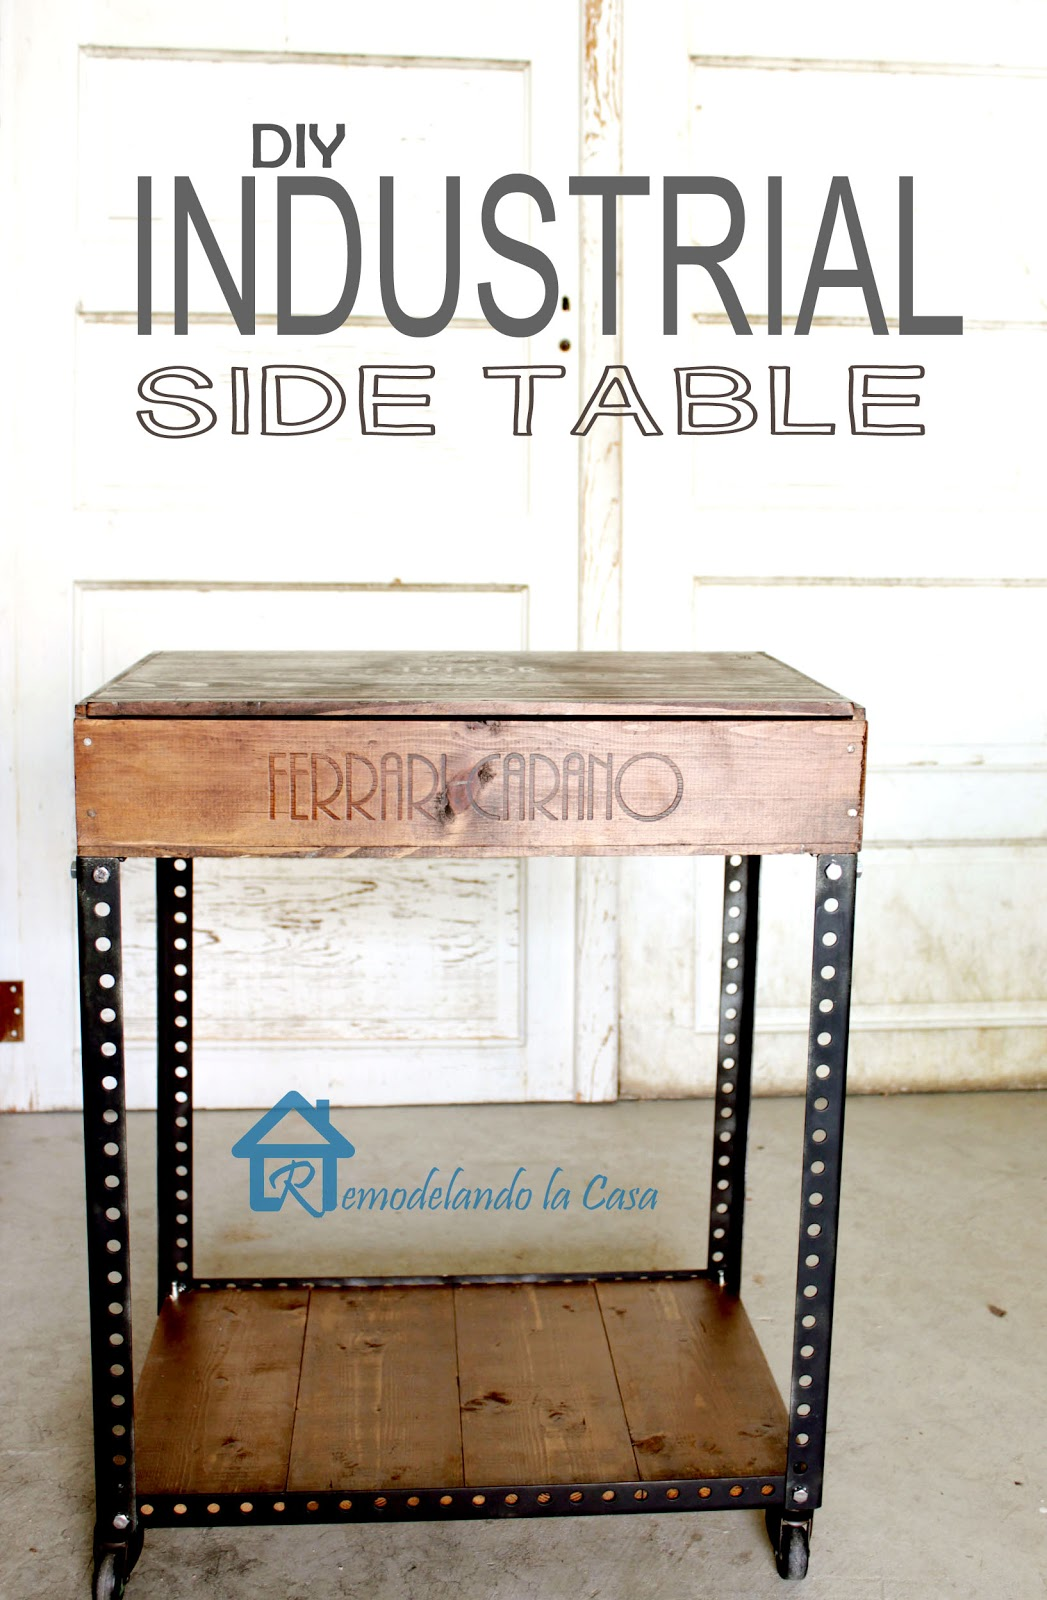 an industrial side table made of reclaimed products.